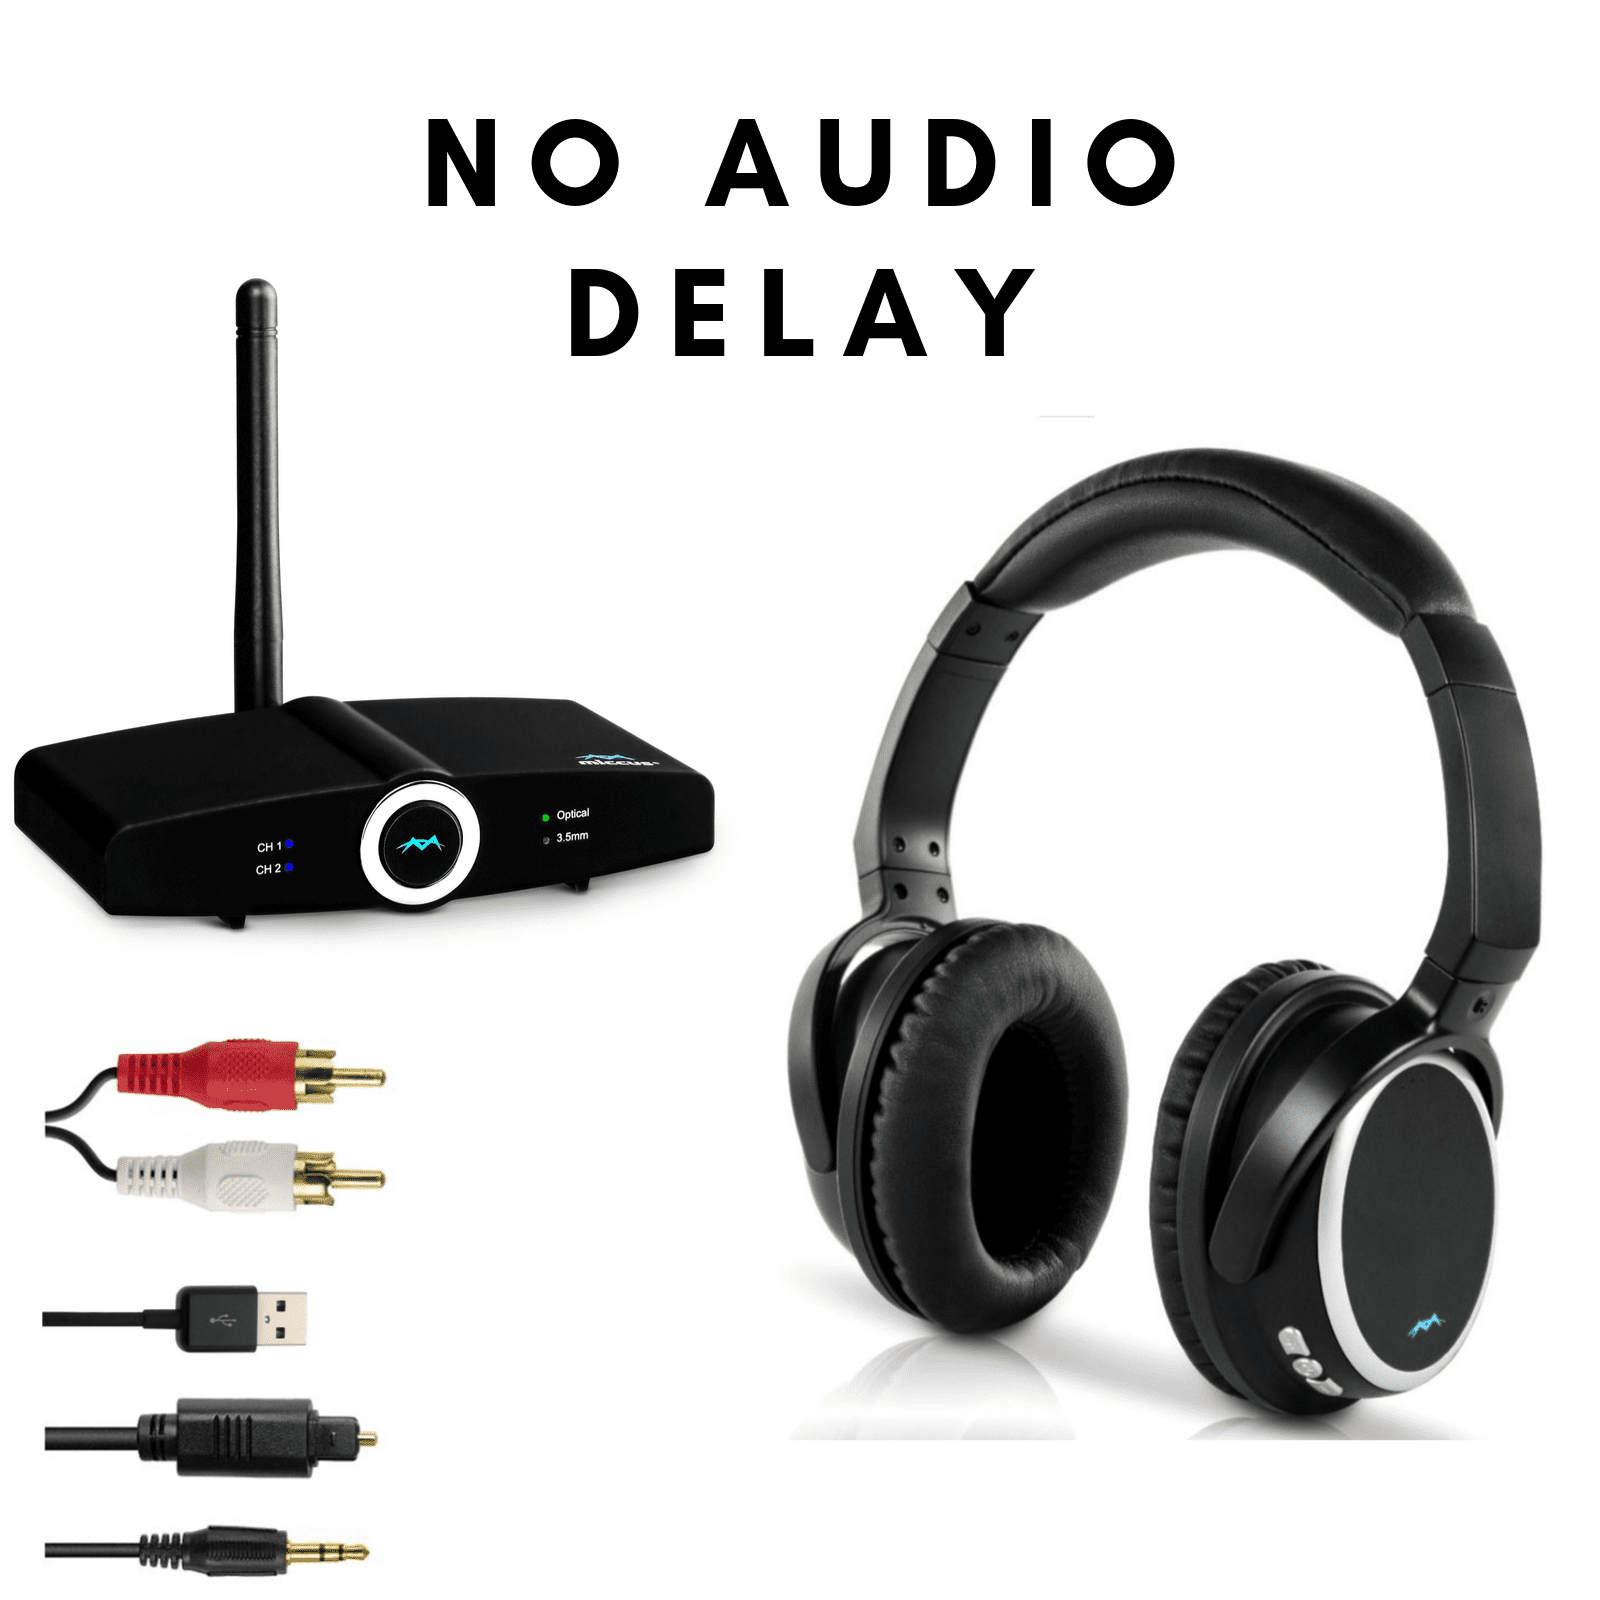 Long Range Tv Wireless Headphones With Bluetooth Transmitter System Paired For Free No Audio Delay Connect Over Ear Headphones To Tv Adapter Mic Computer Pc Desktop Miccus Home Rtx 2 0 Headset